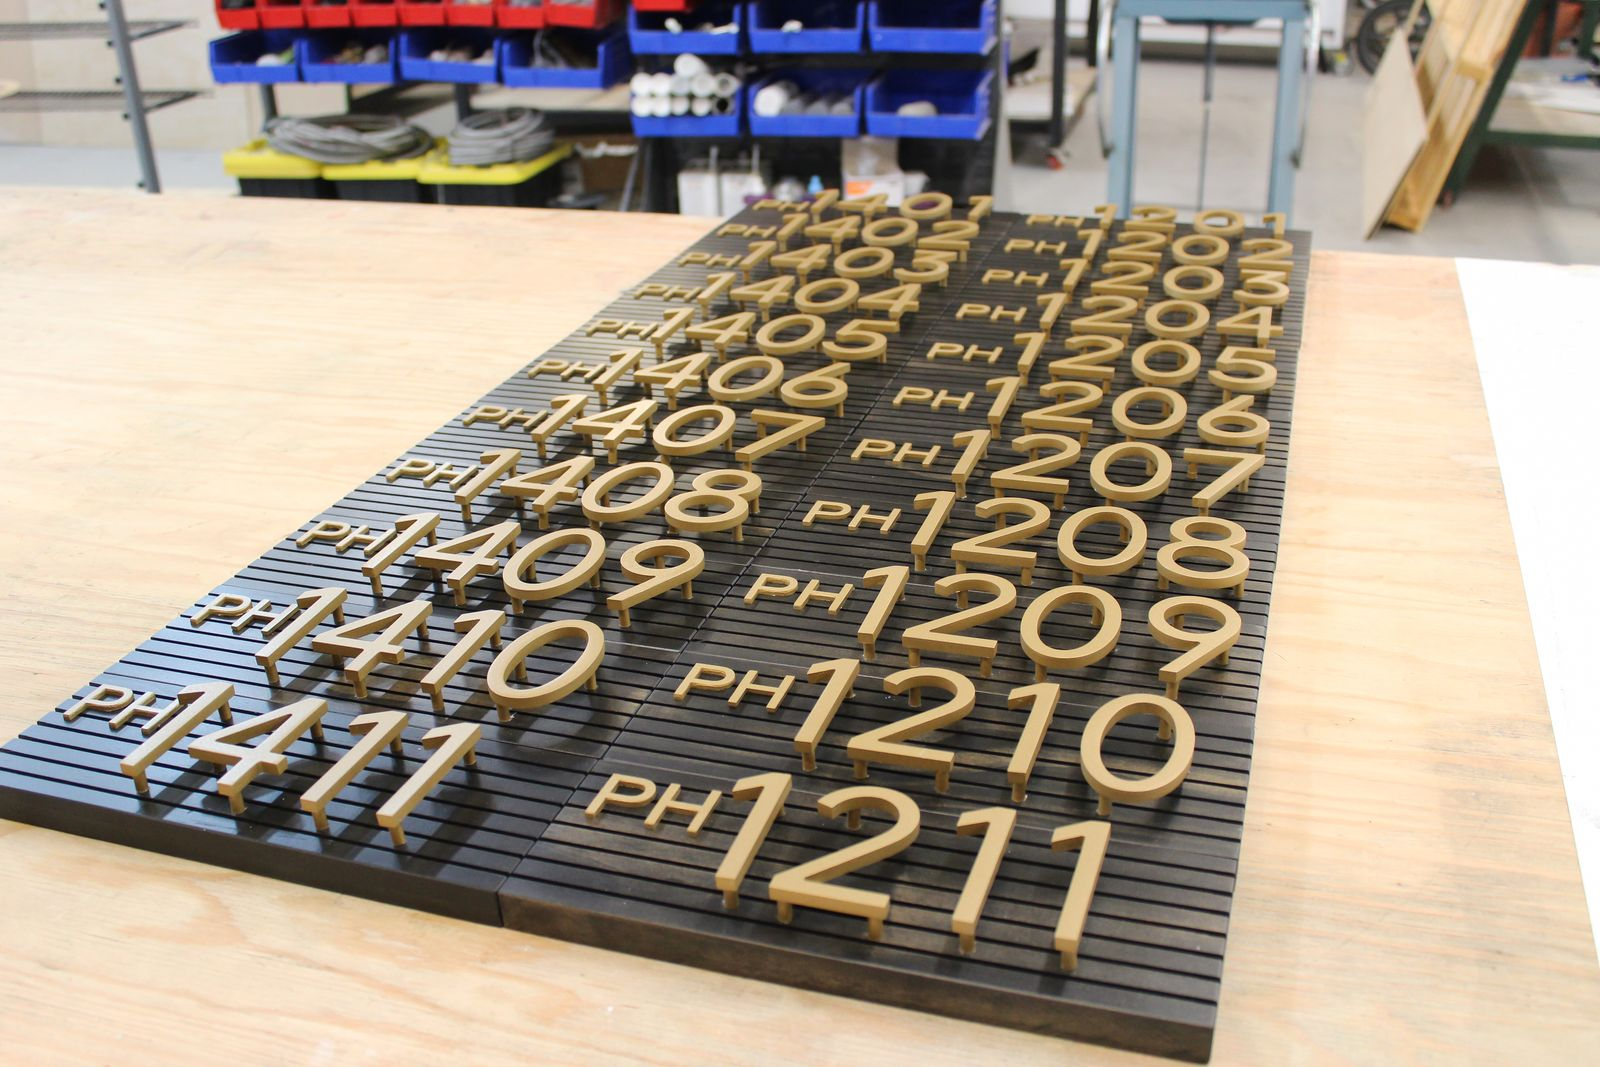 3d metal letters and address numbers sign with a board made of aluminum and wood